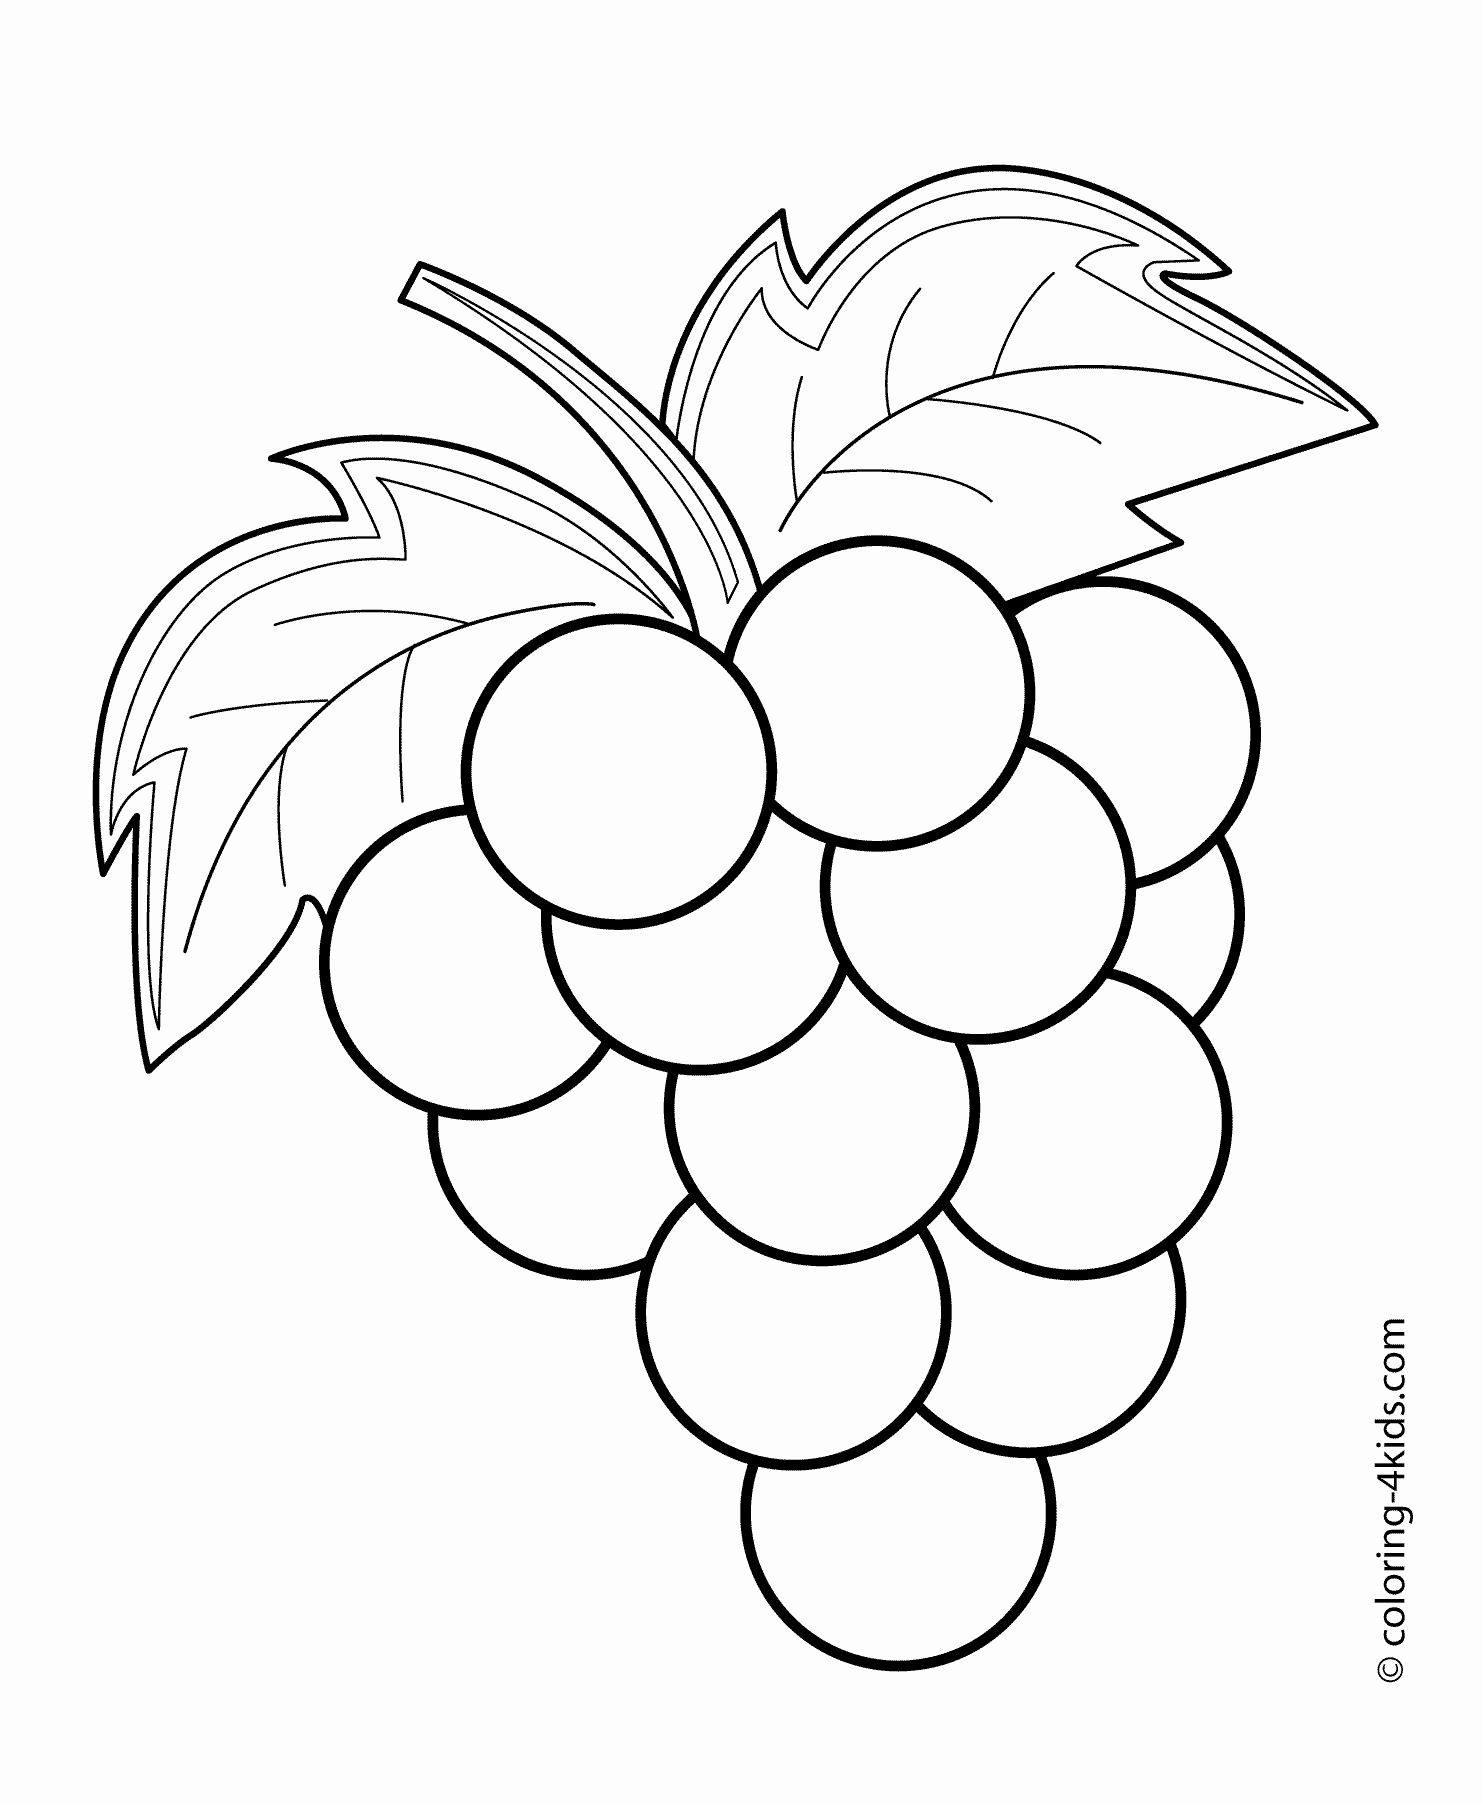 Fruit Coloring Flashcards Fresh Mitch Michellepaeng654 On Pinterest Fruit Coloring Pages Vegetable Coloring Pages Apple Coloring Pages